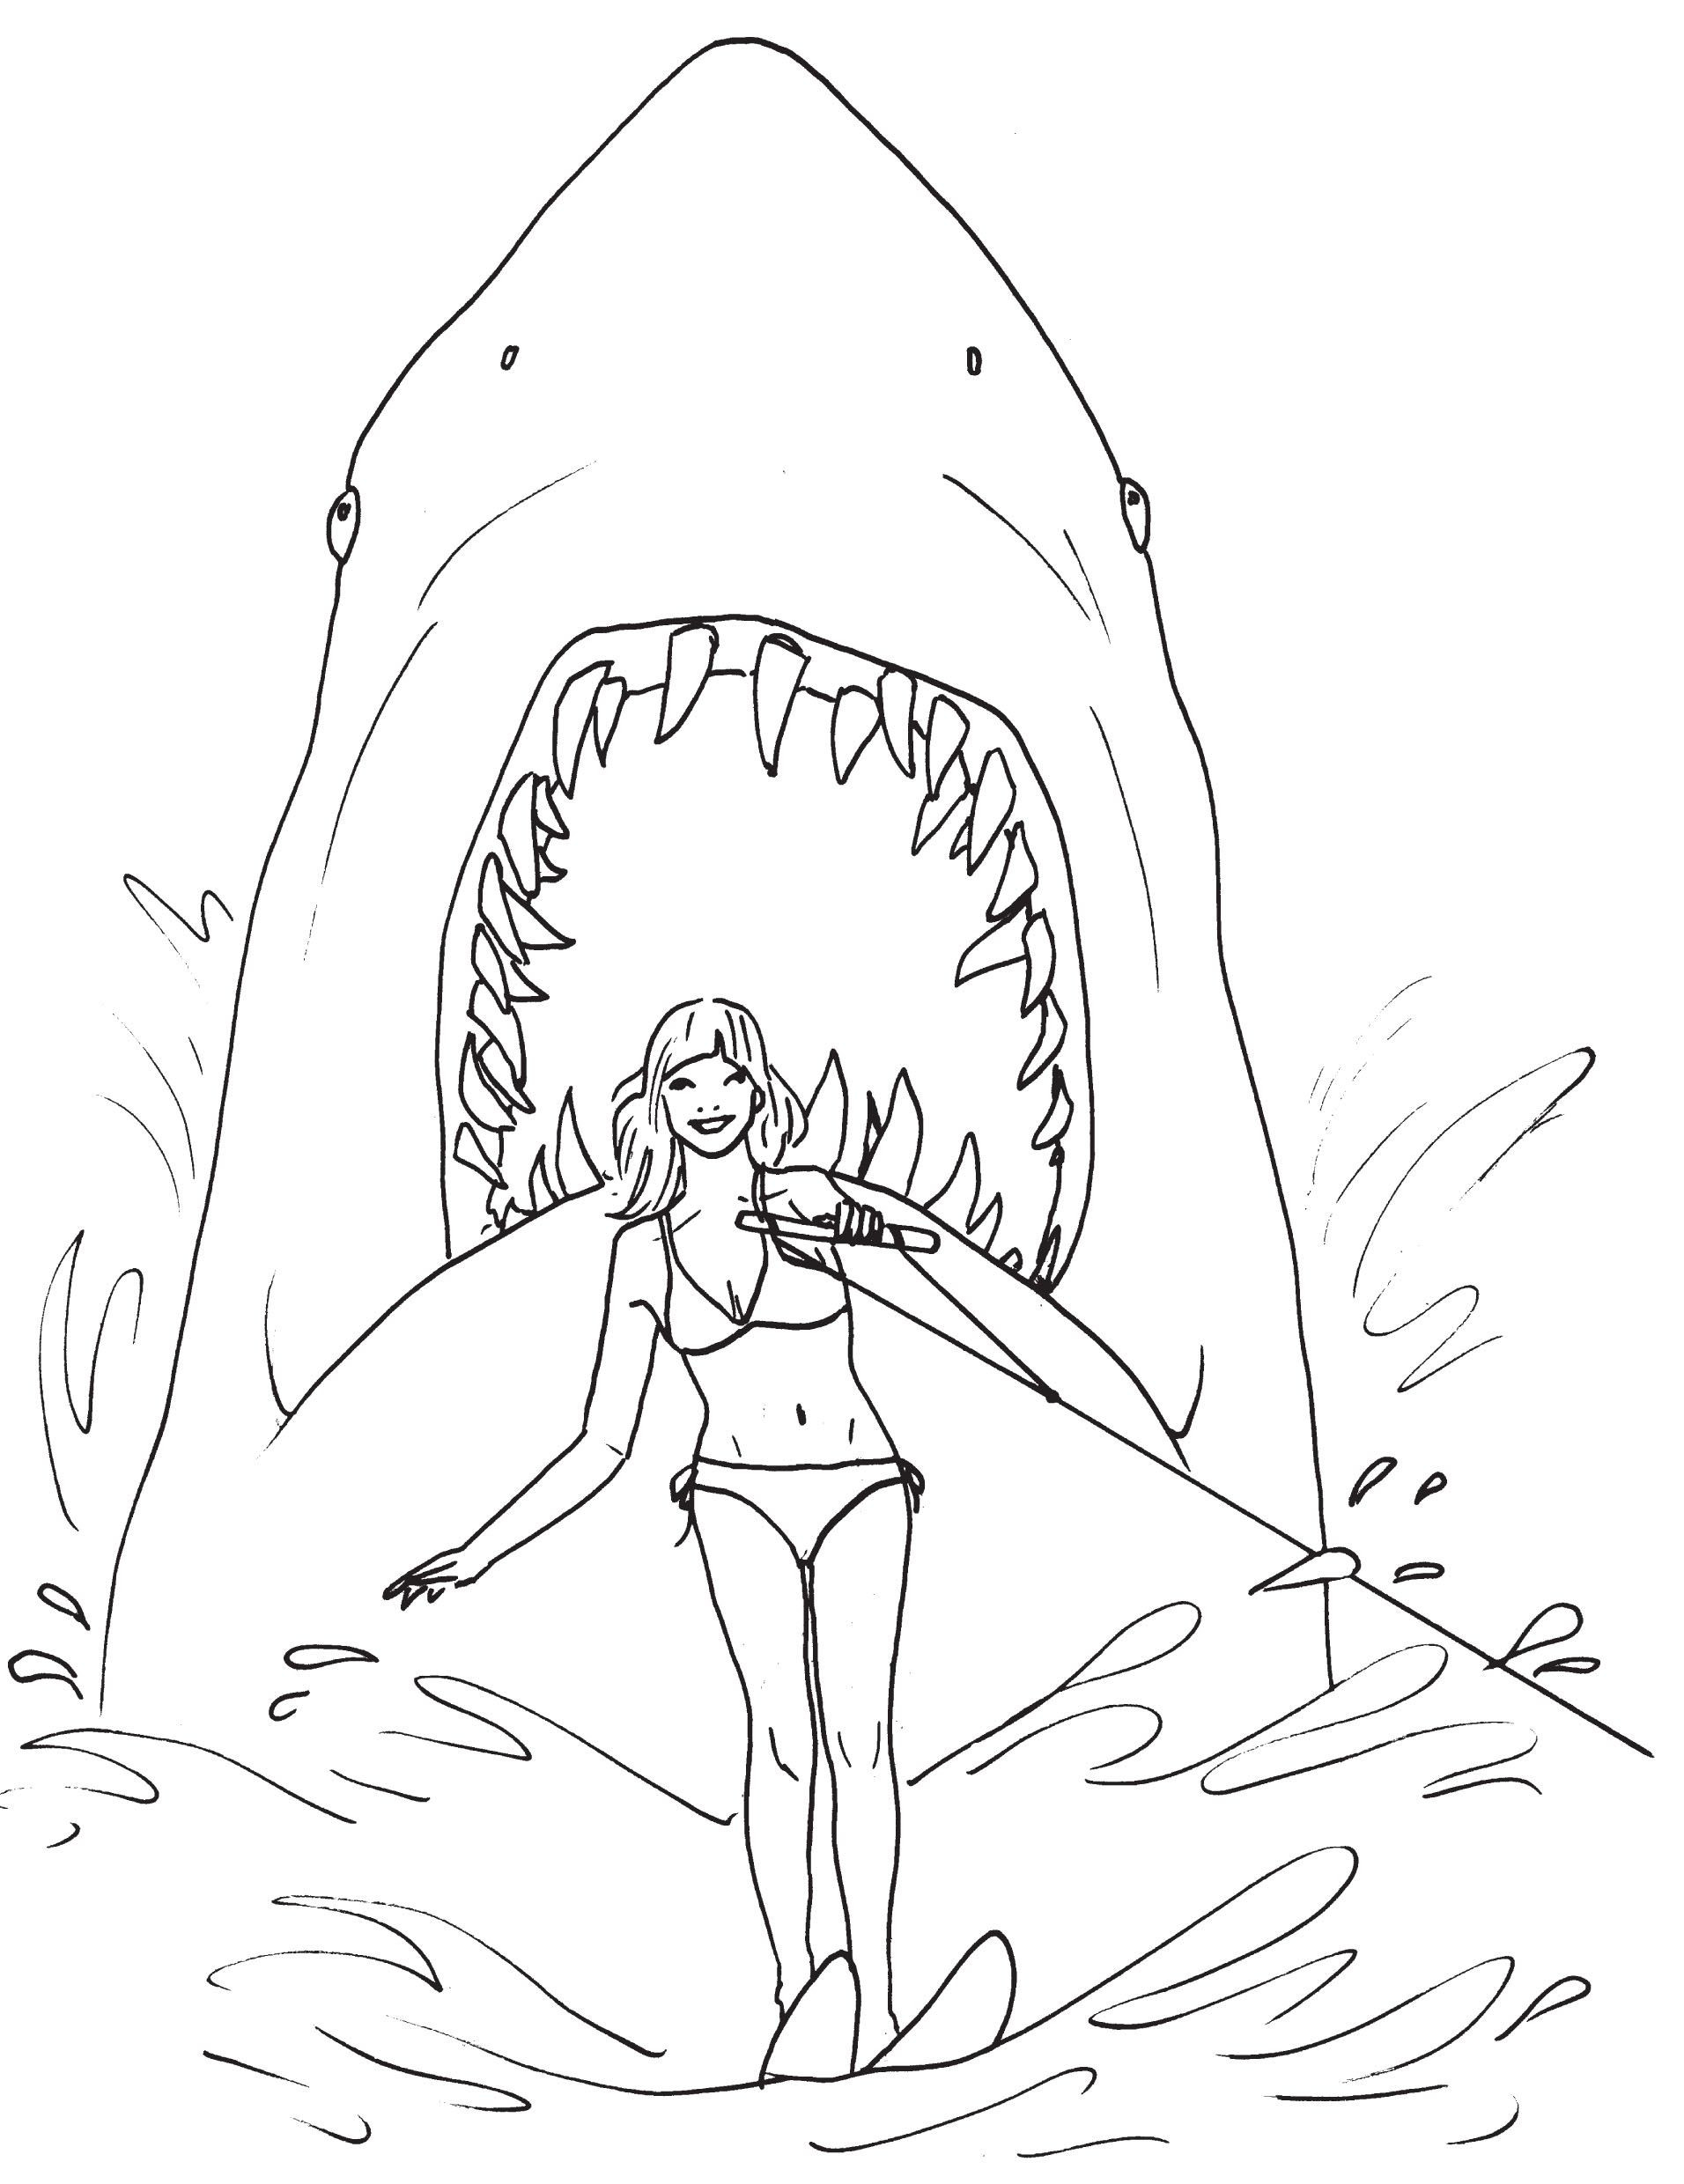 Unbelievable Great White Shark Coloring Pages Pic Styles And Fine Download  Of Best Shark Page To